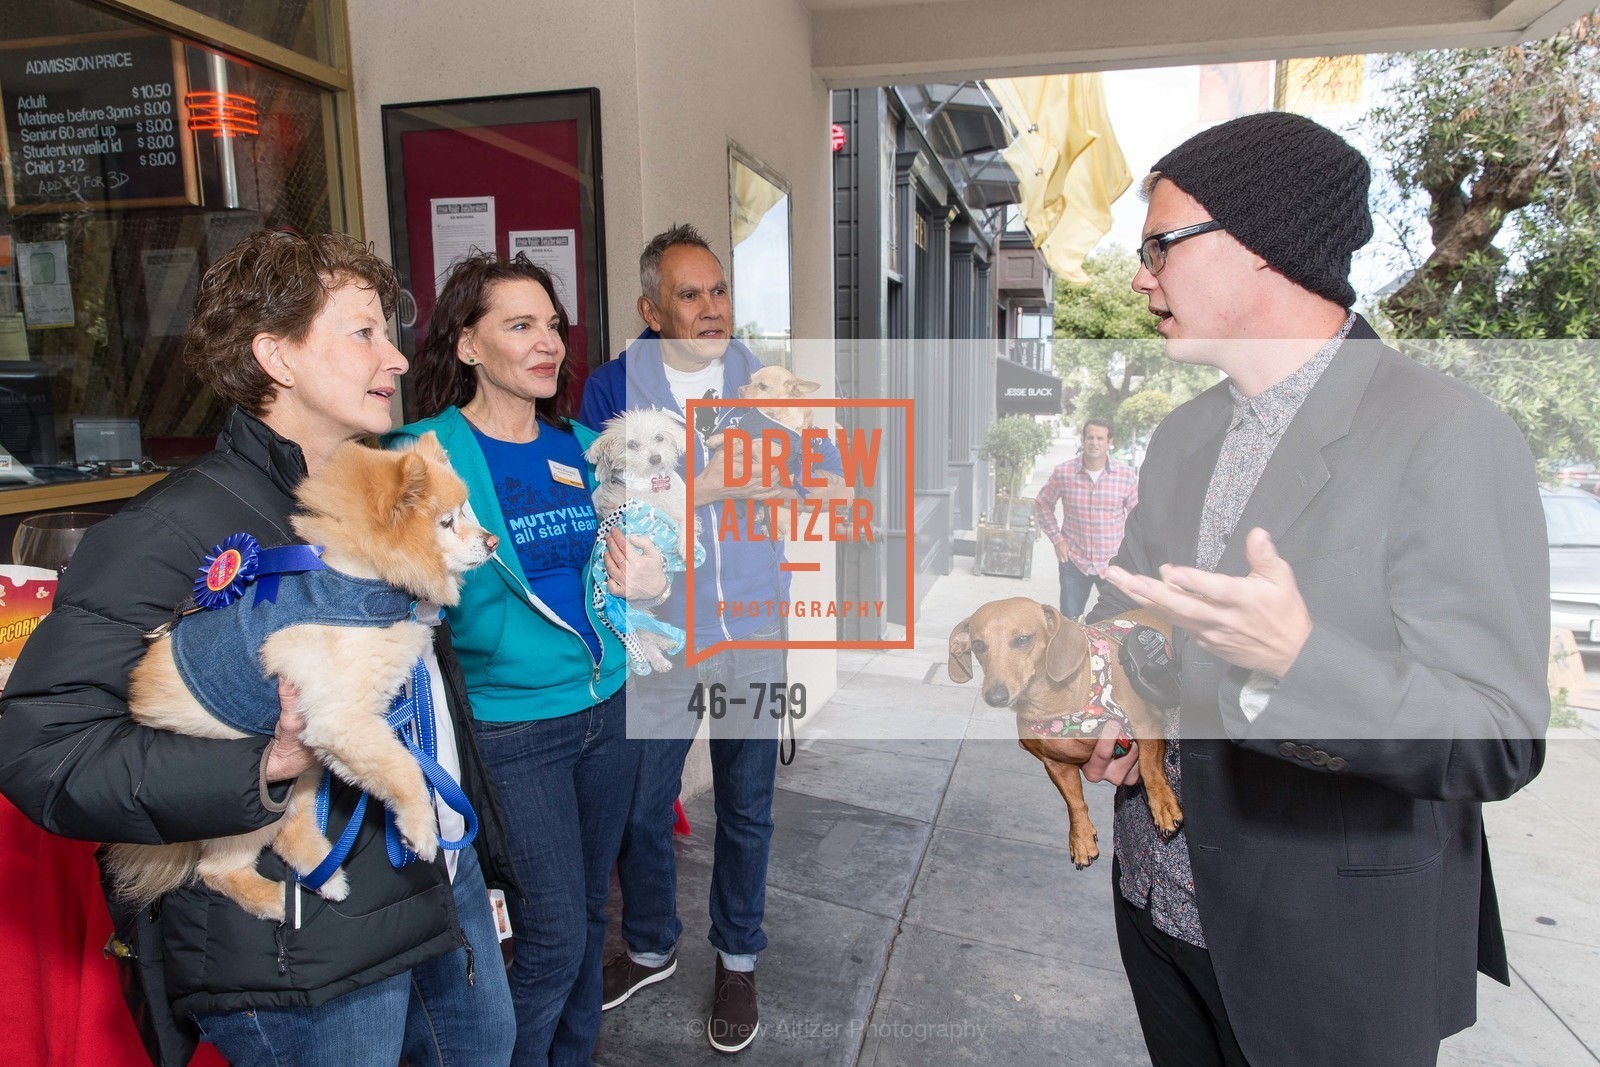 Patty Stanton, Sherri Franklin, Noelson Bloncourt, Austin Anderson, WEINER DOG, The Movie, Screening, US, May 31st, 2015,Drew Altizer, Drew Altizer Photography, full-service agency, private events, San Francisco photographer, photographer california